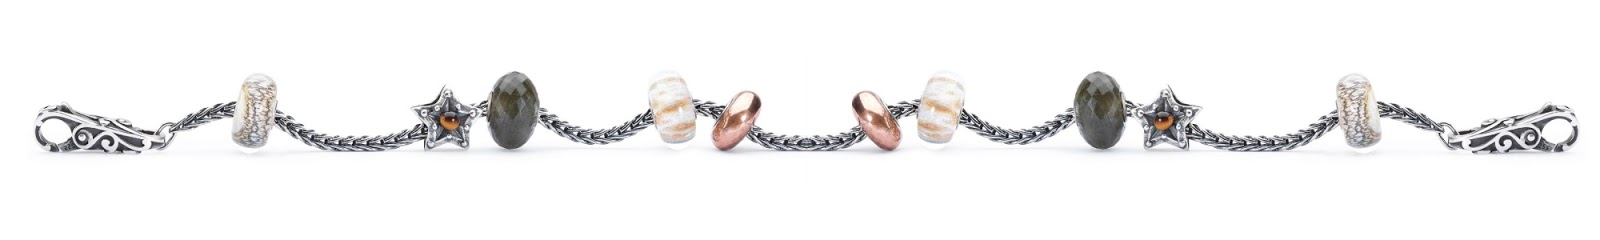 The First Silver Star All About Trollbeads Fishmeatdie